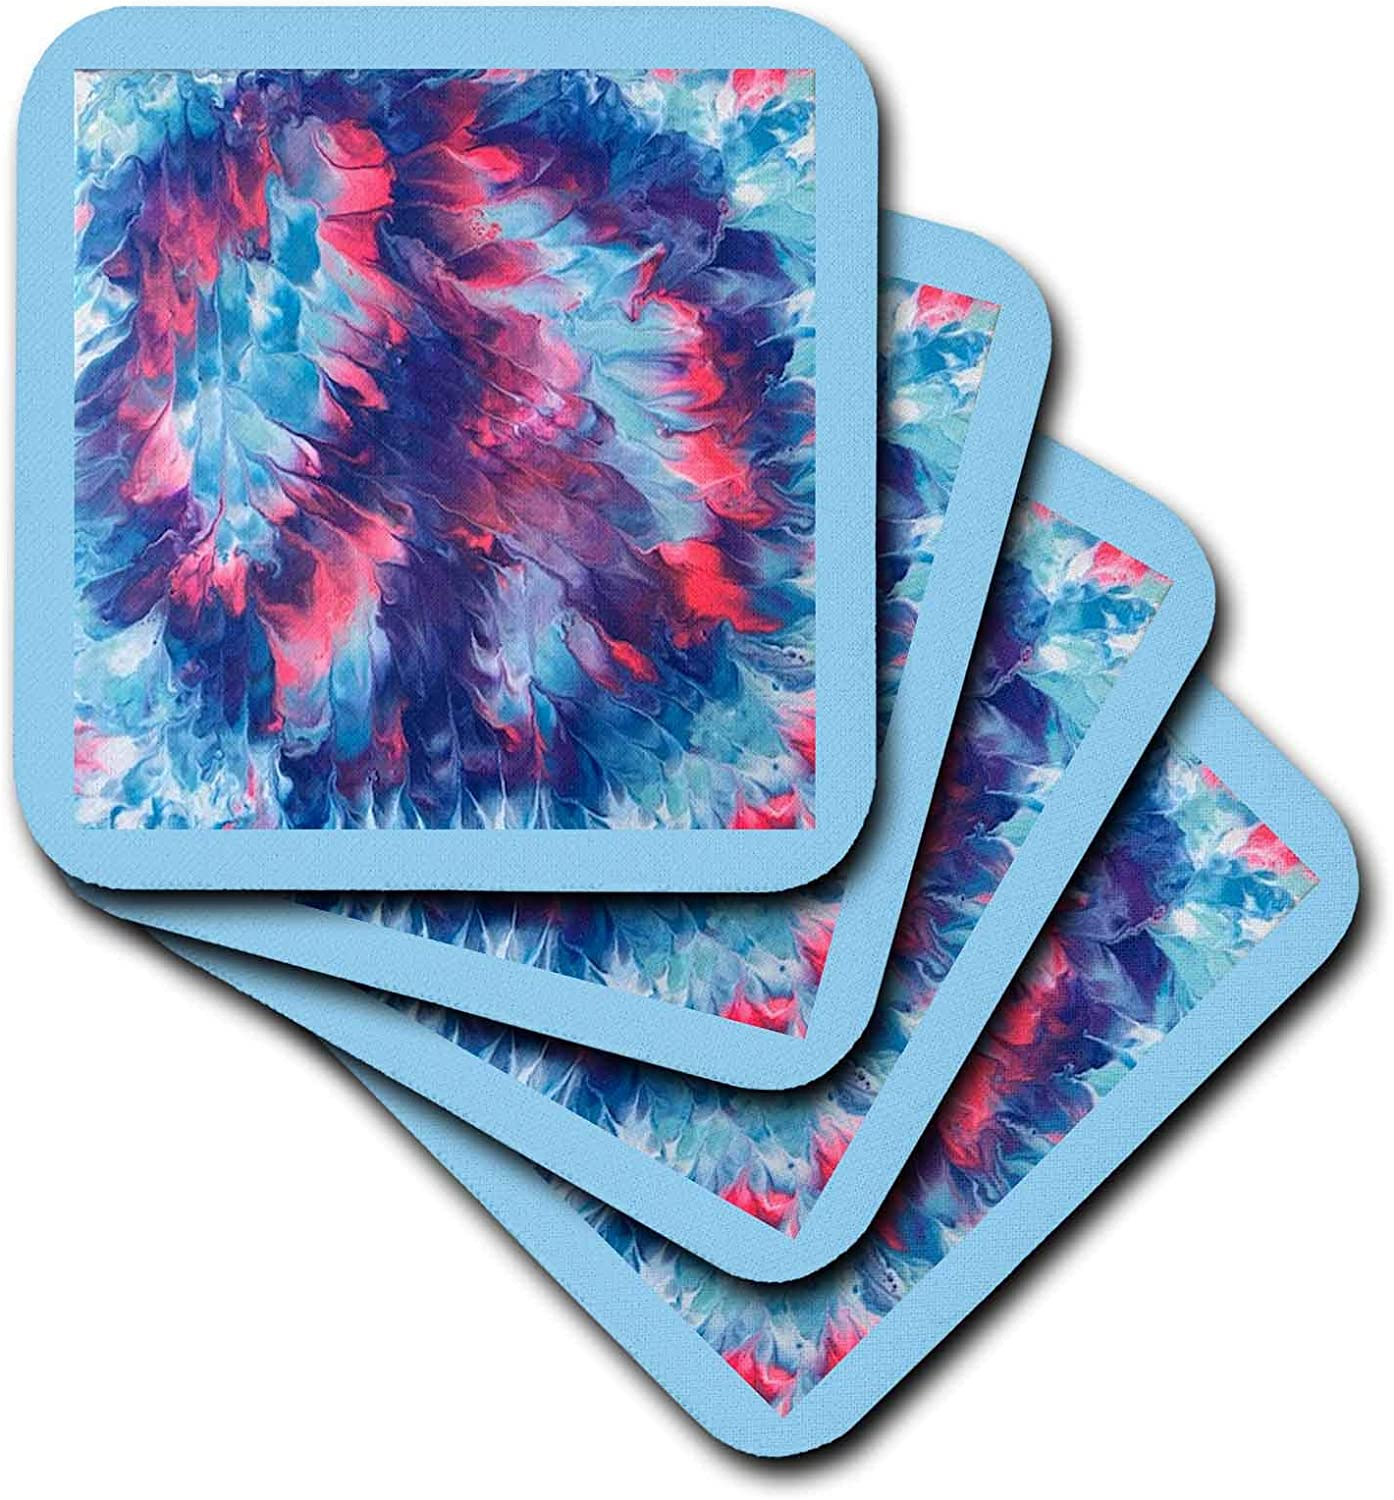 3dRose Abstract Painting of Pink Blue Purple Blends Peace Sign - Coasters (cst_334869_4)